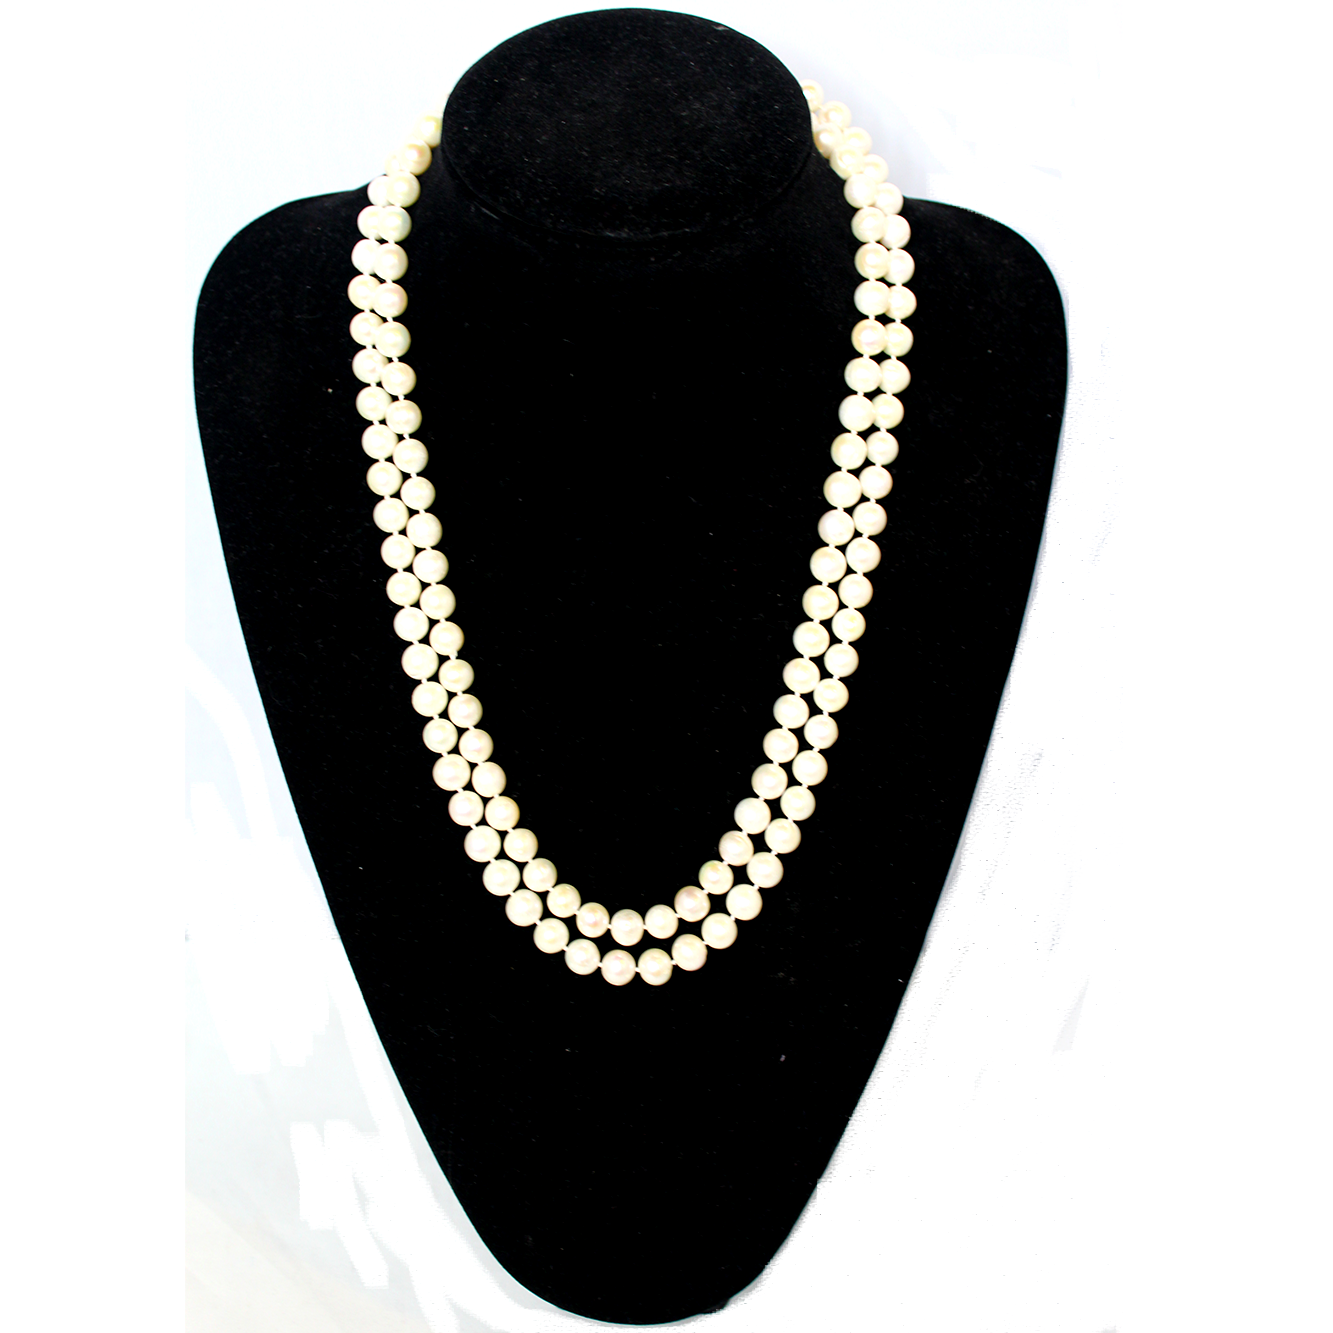 Fresh Water Pearl Necklace, AAA Quality, Ivory, 8.5-9mm, 47 inch